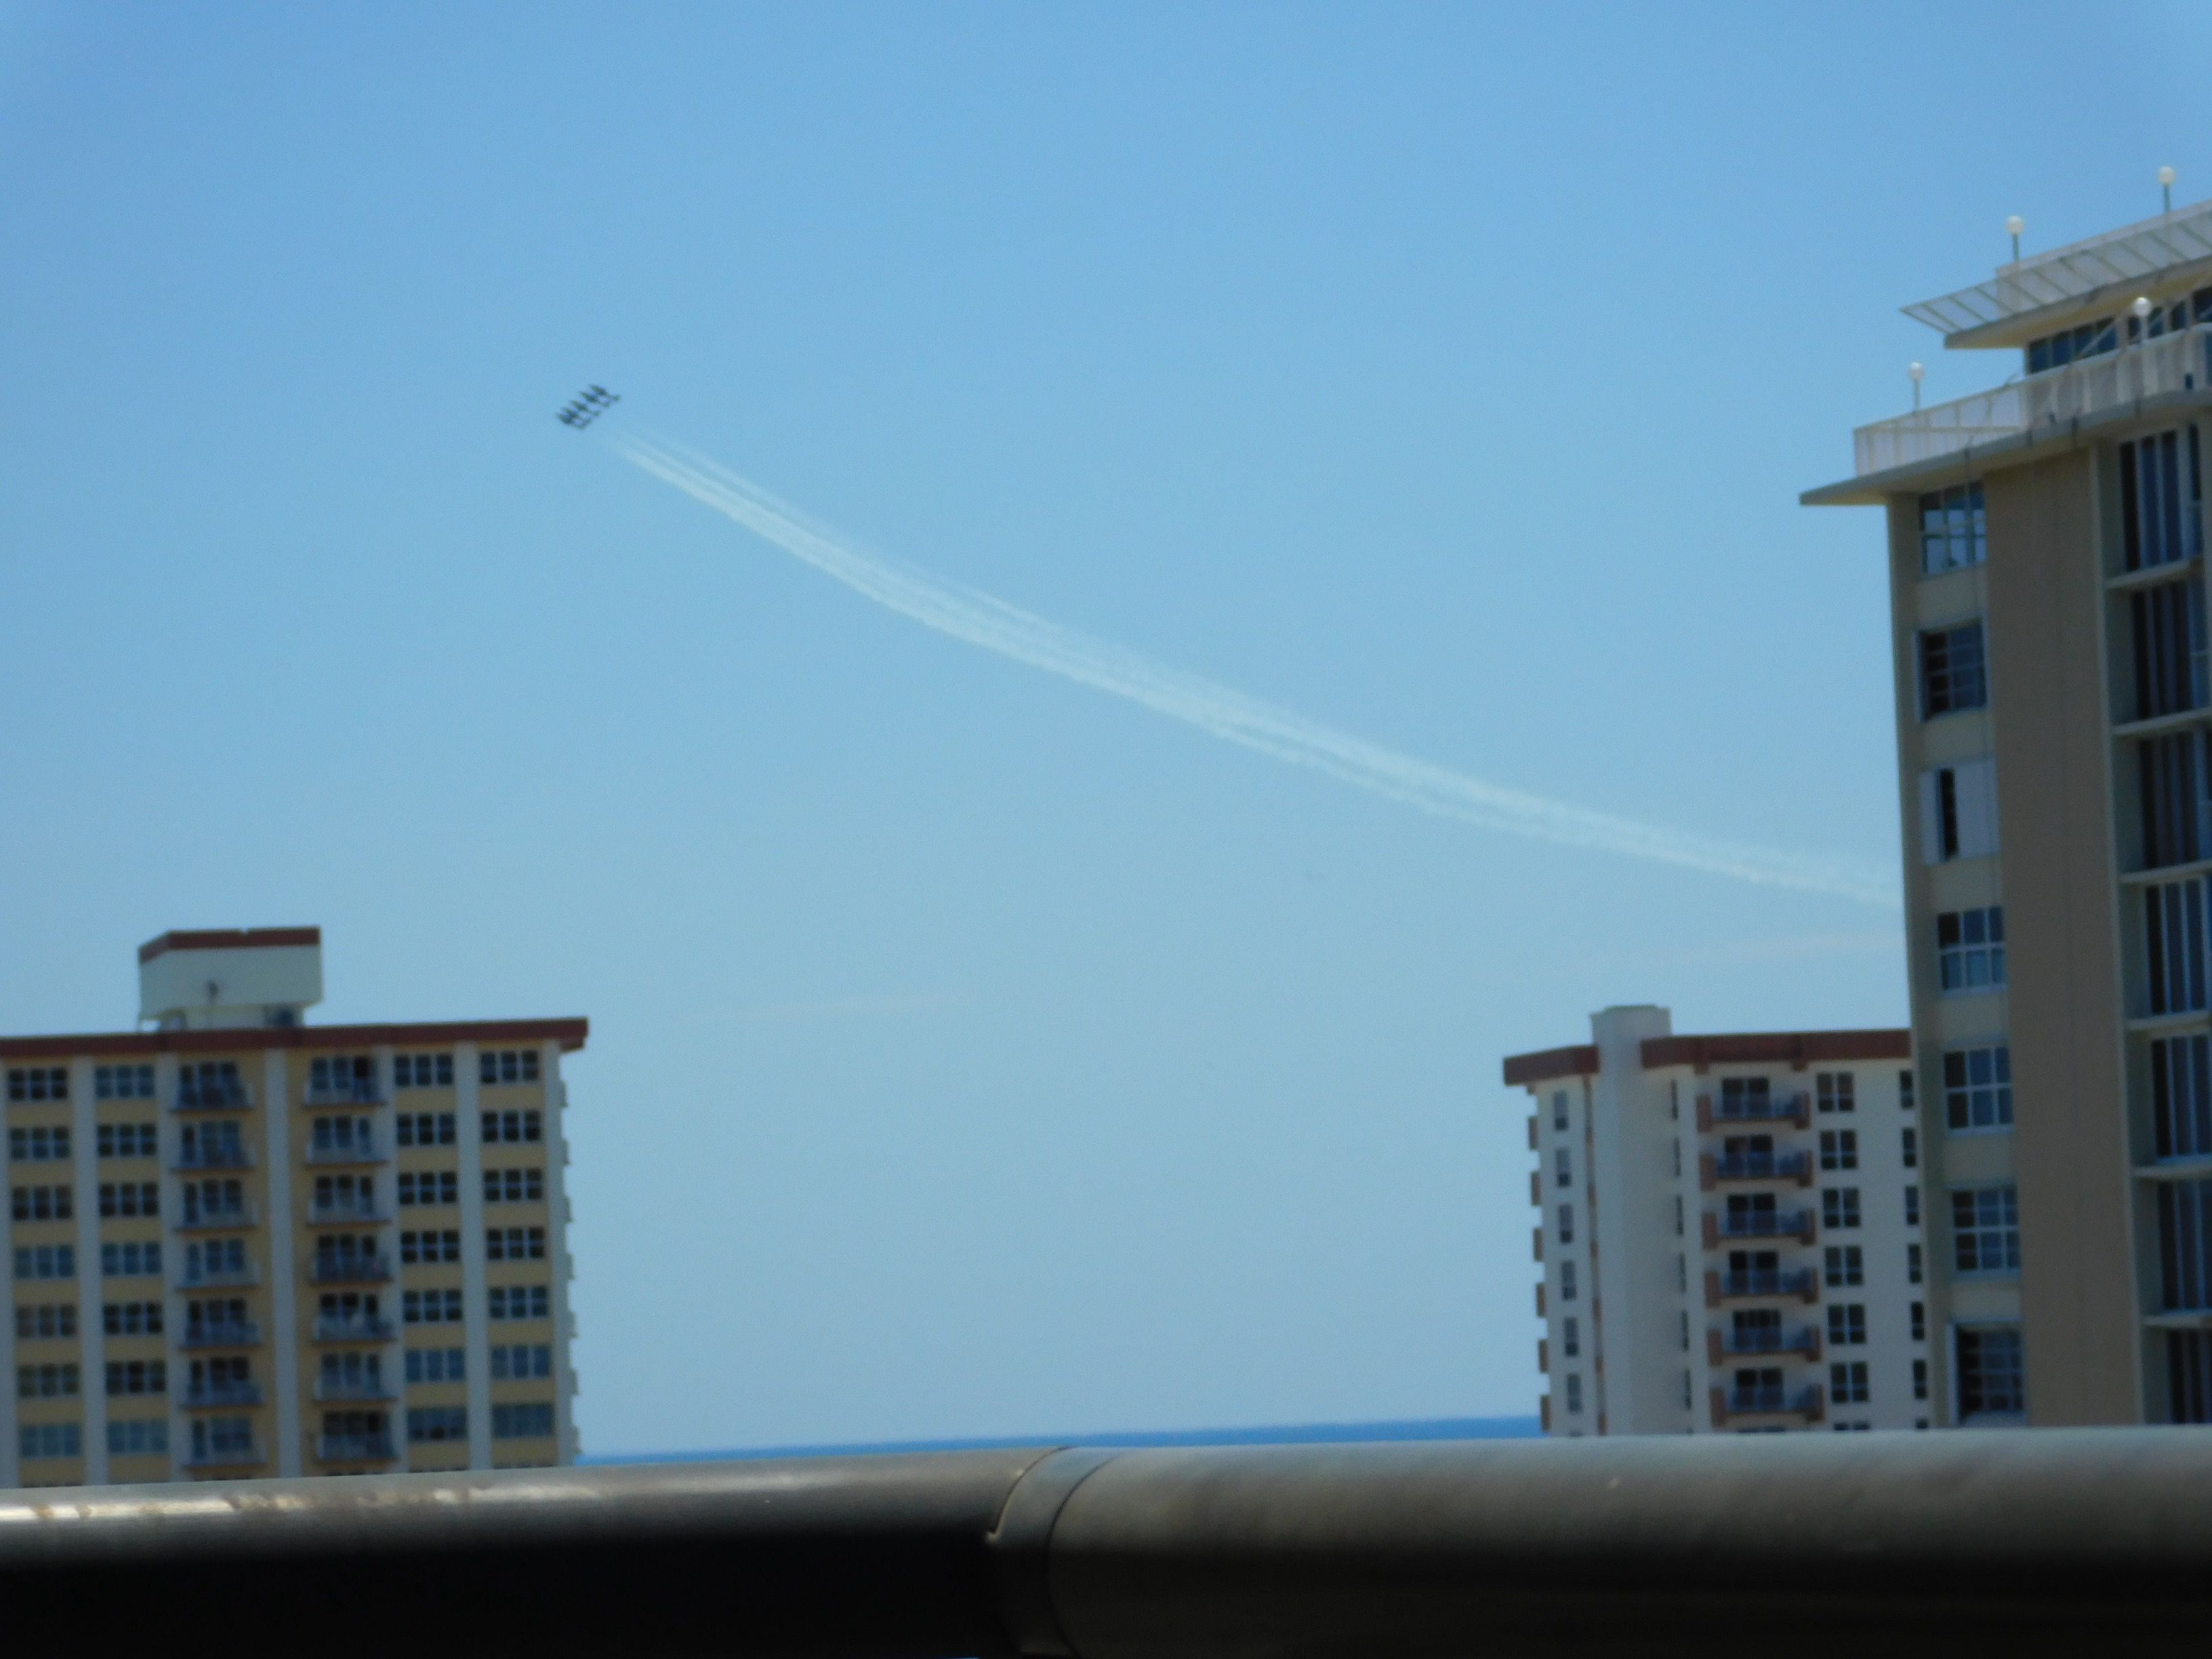 Fort Lauderdale Air Show (With images) Air show, Photo